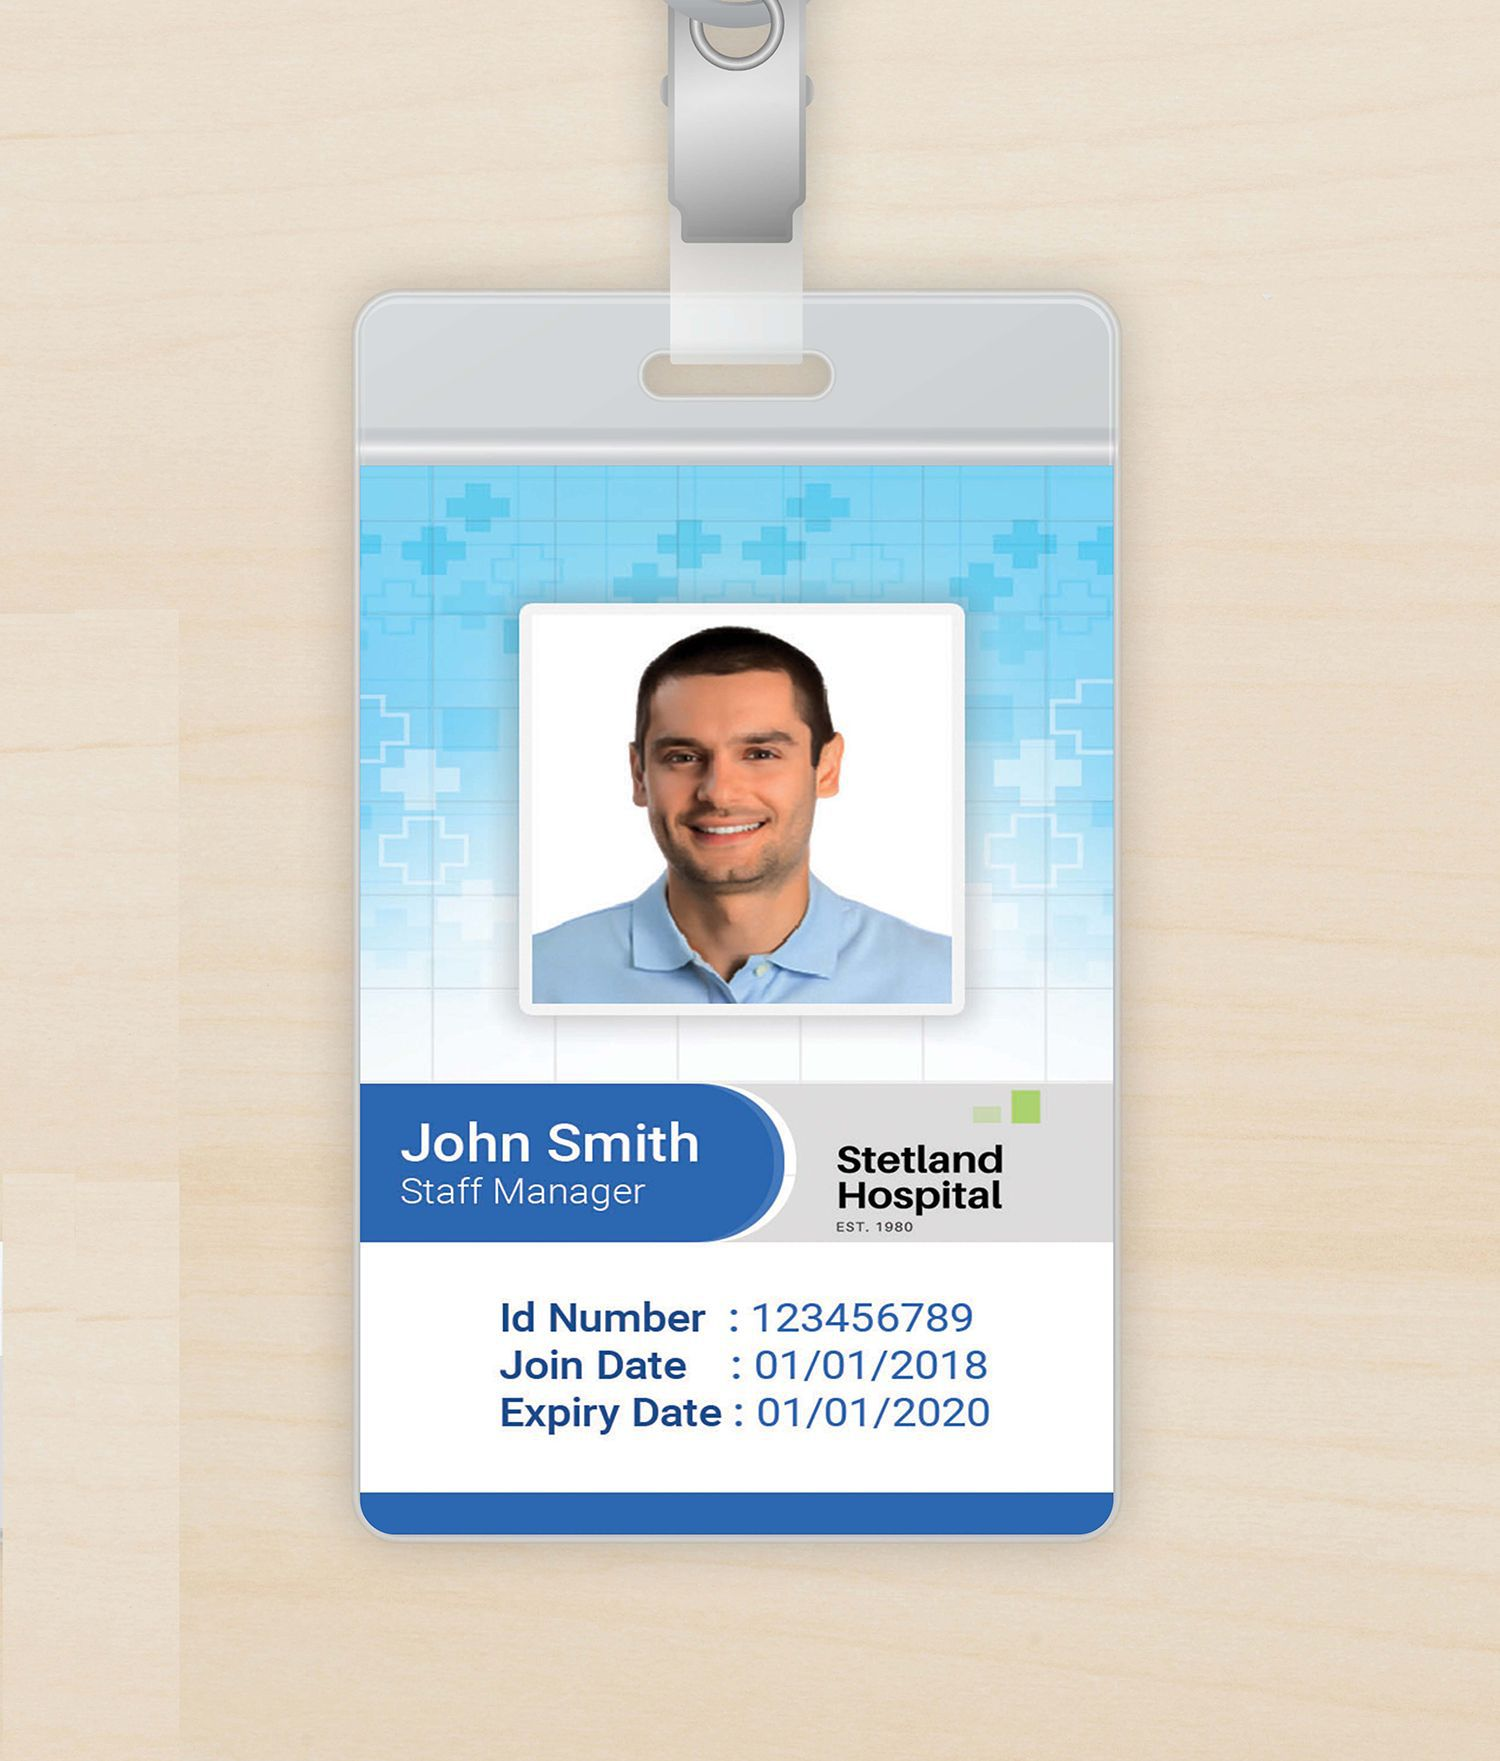 003 Unforgettable Id Badge Template Free Online Idea Full